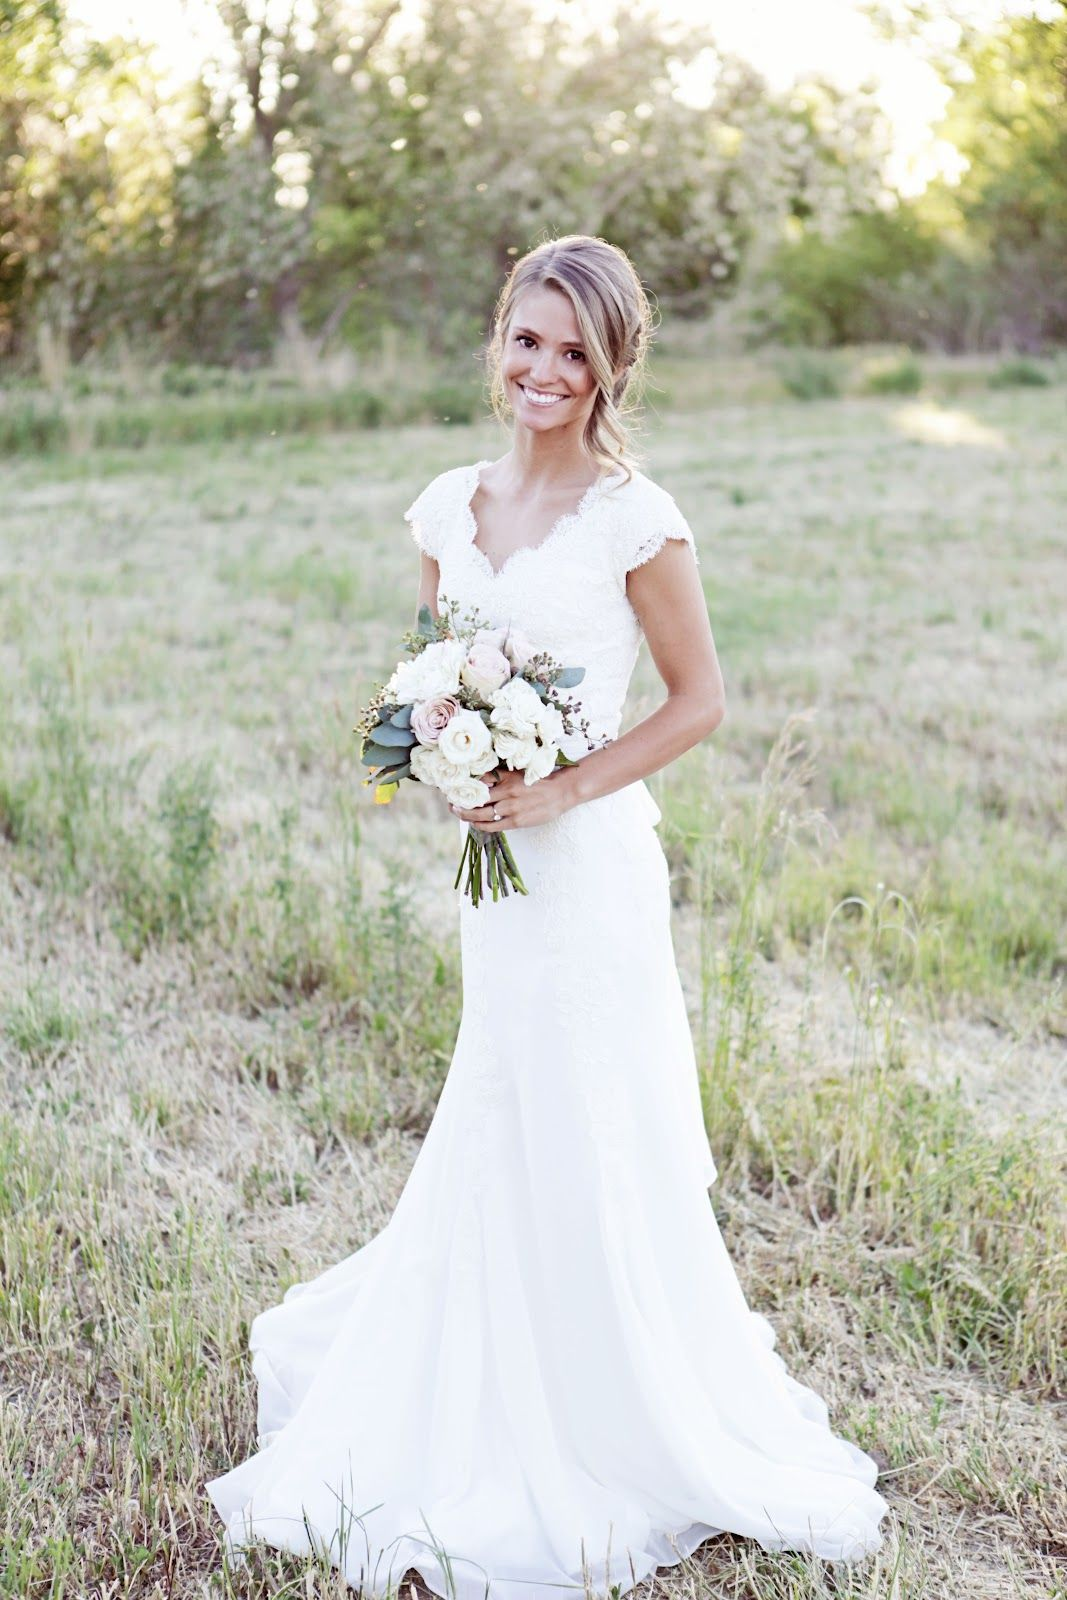 Cheap wedding dresses with sleeves  wedding dress sleeves modest lds mormon temple photography